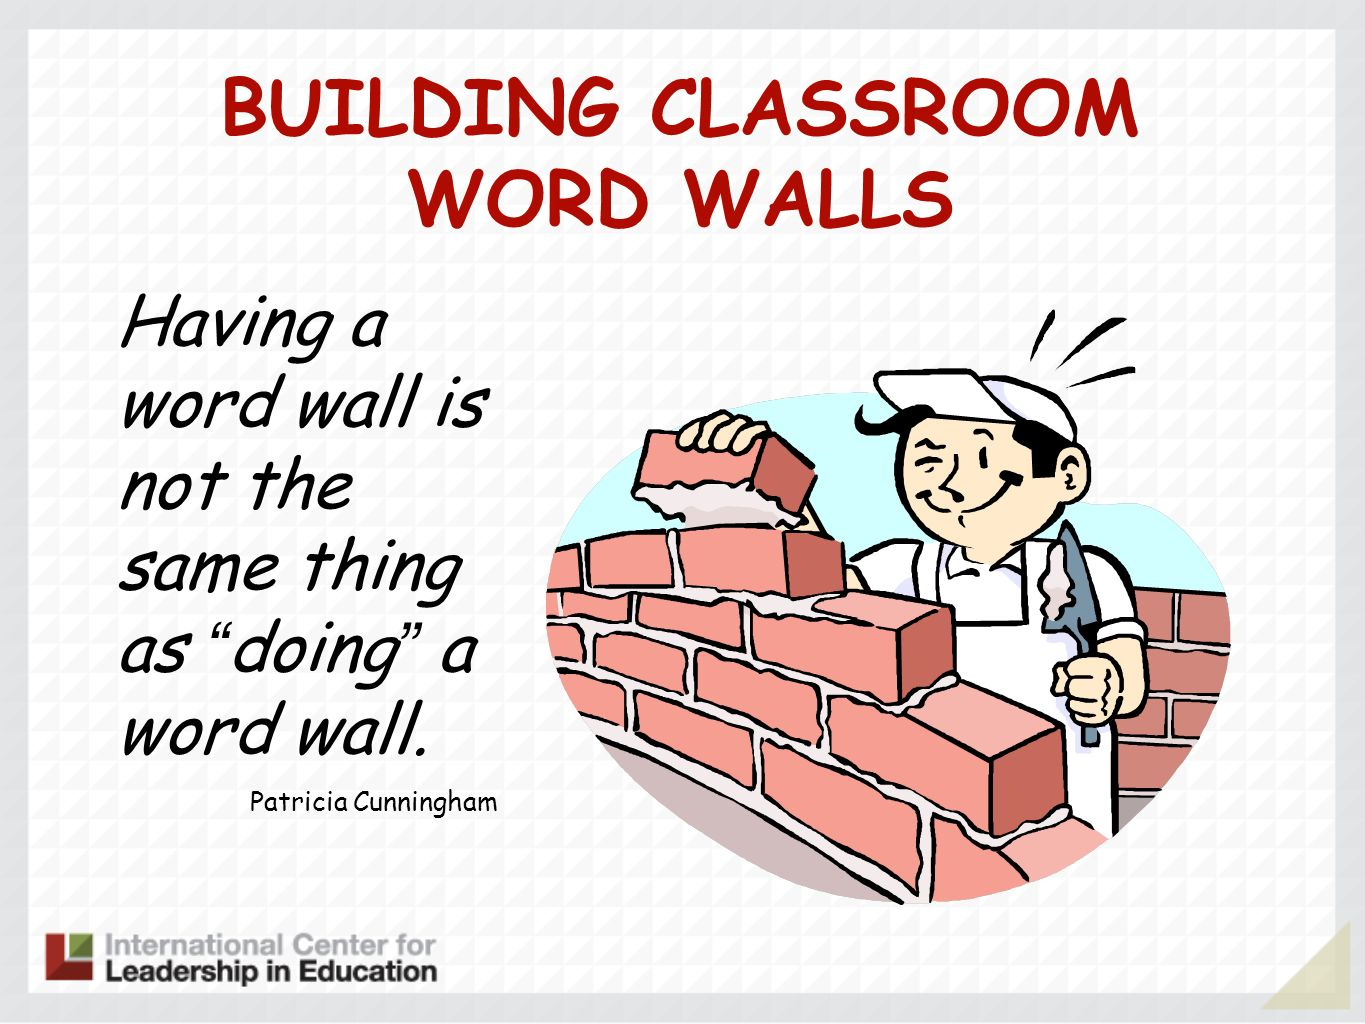 BUILDING CLASSROOM WORD WALLS Having a word wall is not the same thing as doing a word wall. Patricia Cunningham